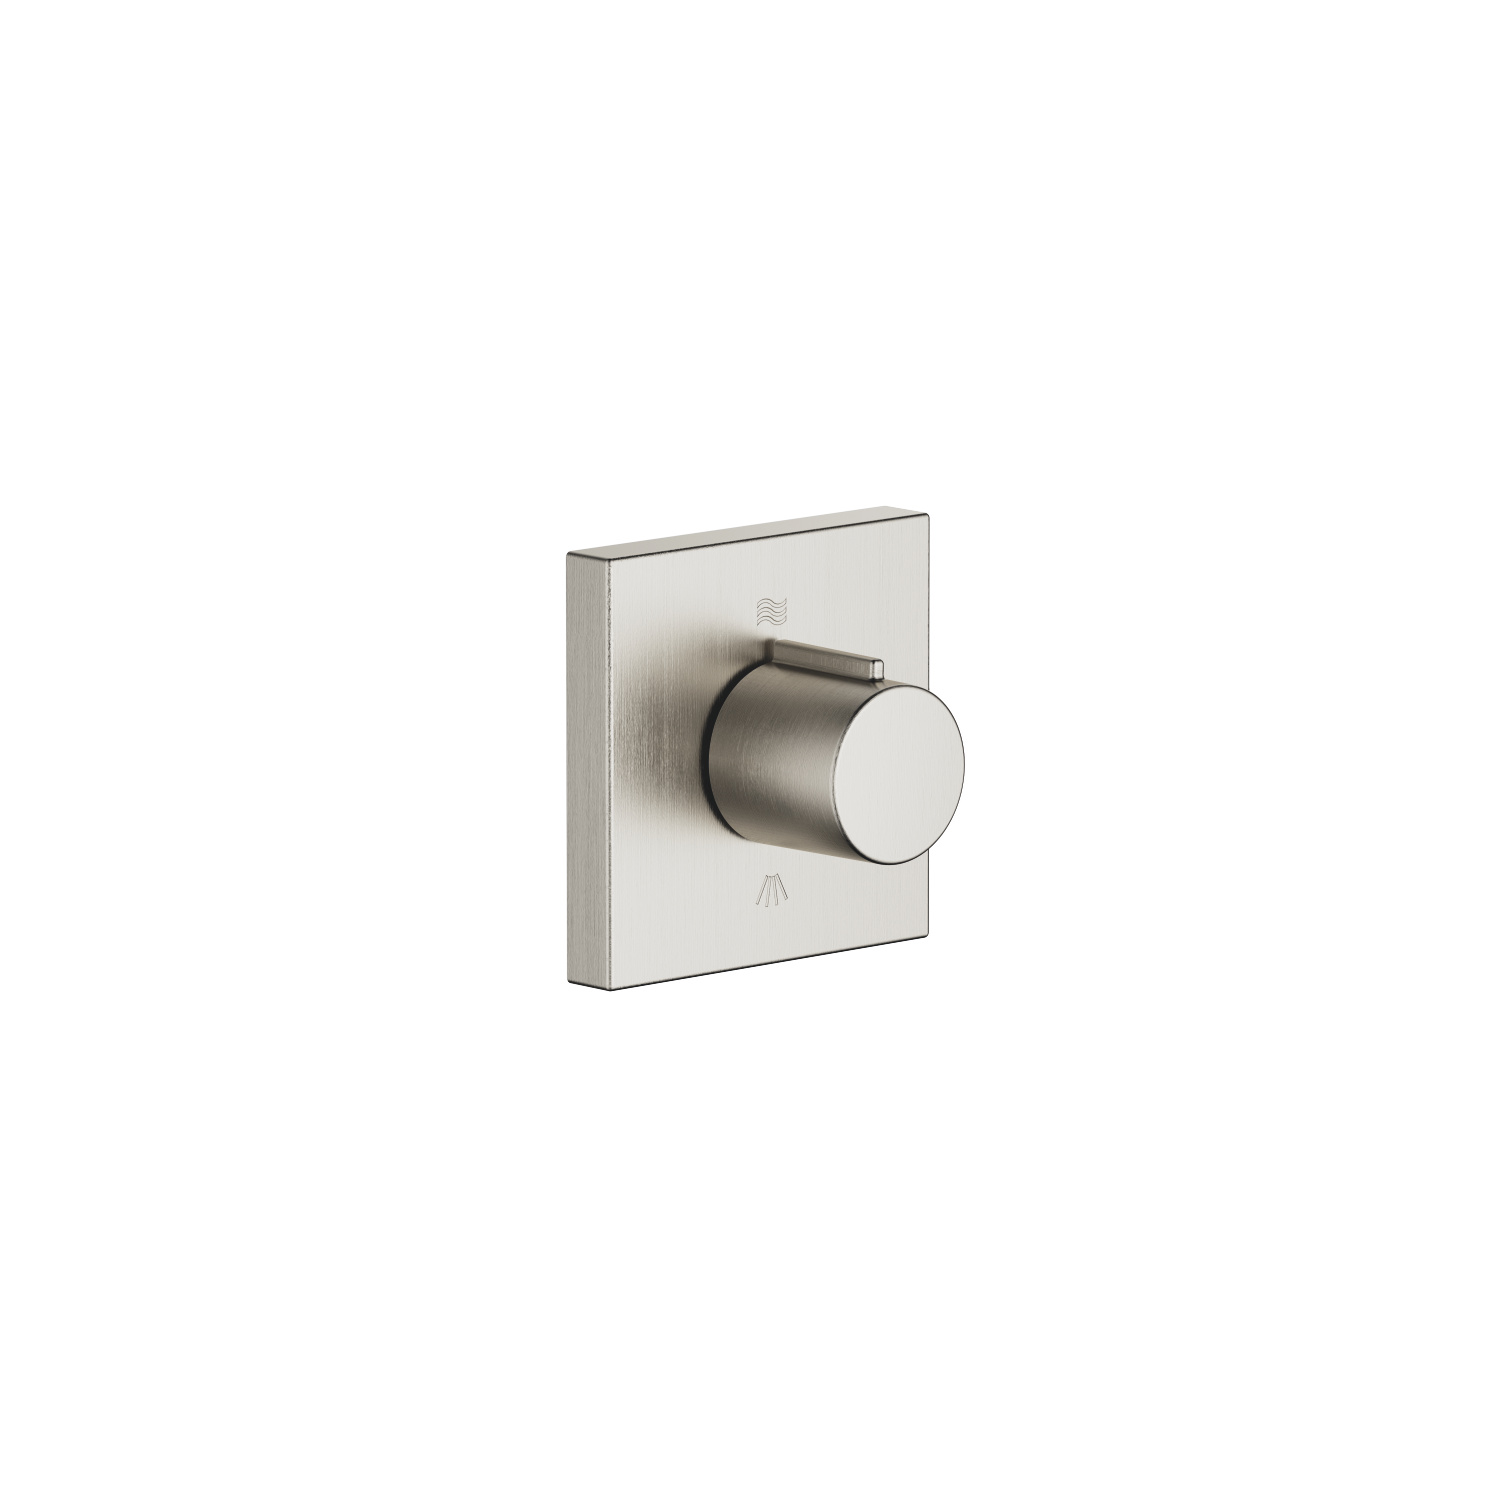 Wall mounted two-way diverter - platinum matte